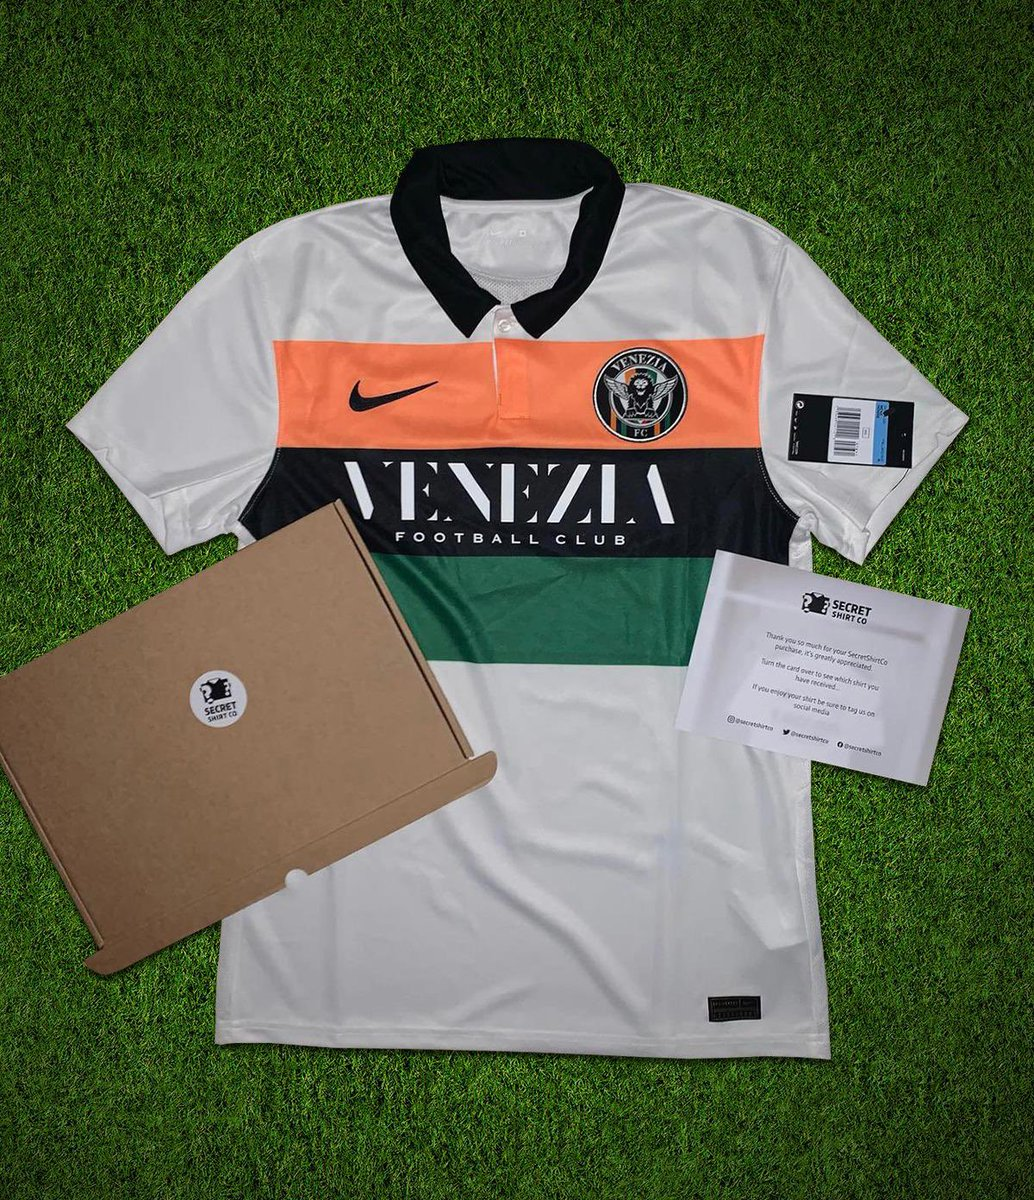 If Kevin de Bruyne scores 1st against Monchengladbach we'll giveaway a https://t.co/0dDyzv85B2 box.   To enter:   🔃 Retweet this tweet 🤝 Follow us.  Good luck! 📦 https://t.co/fJLKIaD0Gs